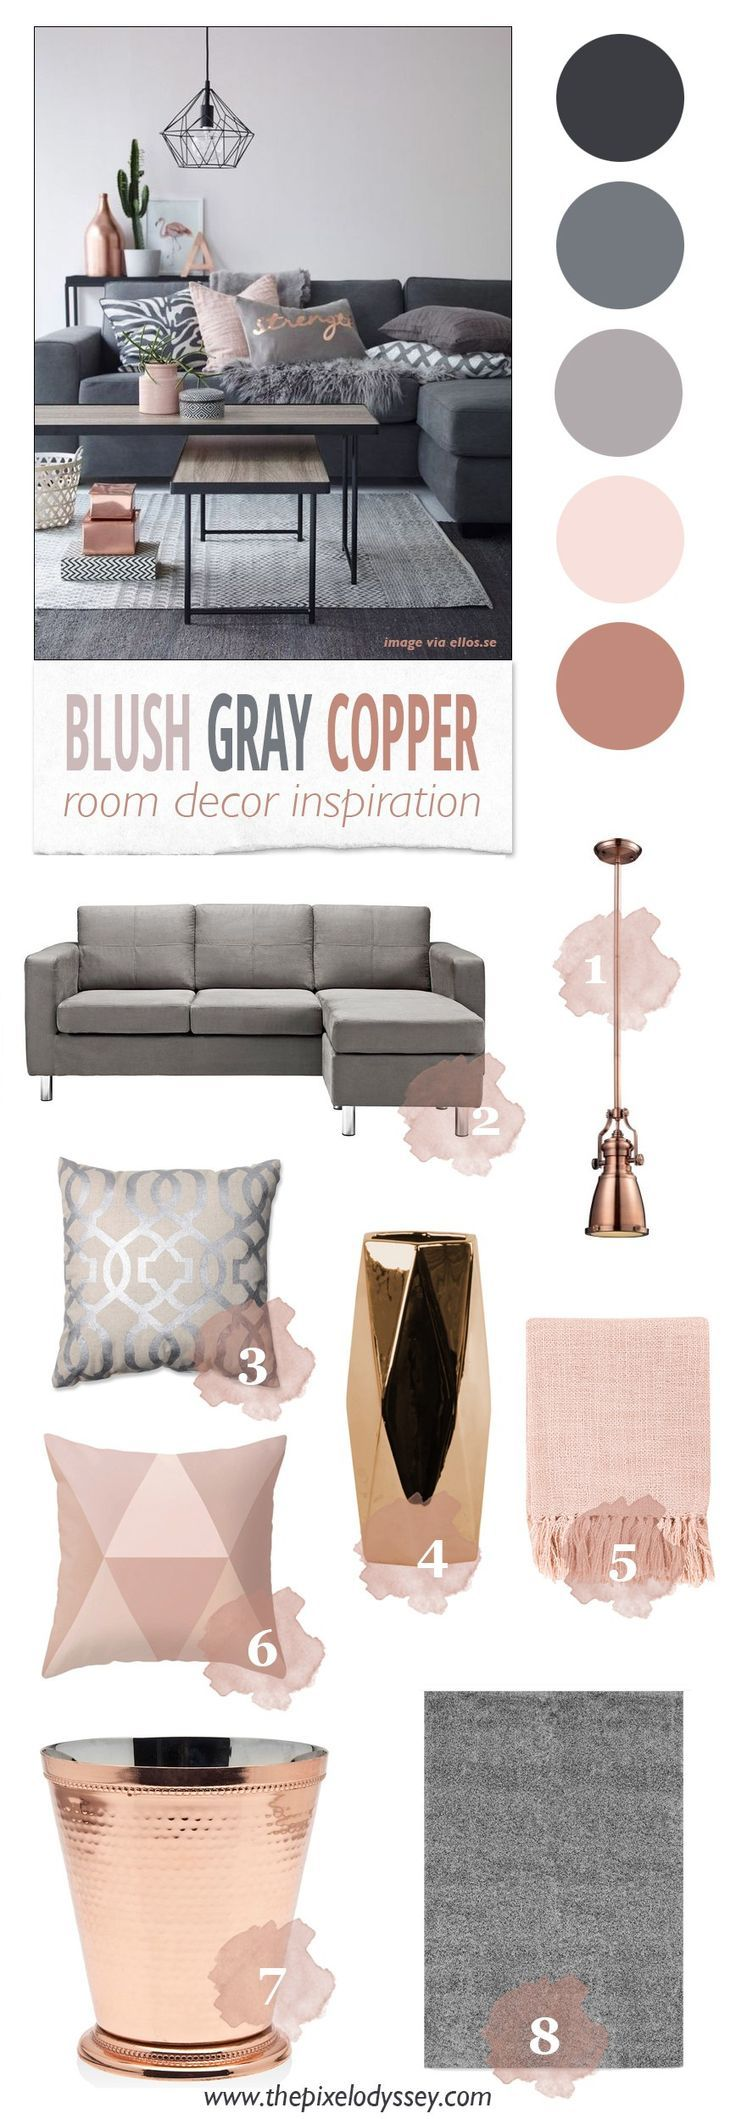 Best 25+ Blush grey copper living room ideas on Pinterest